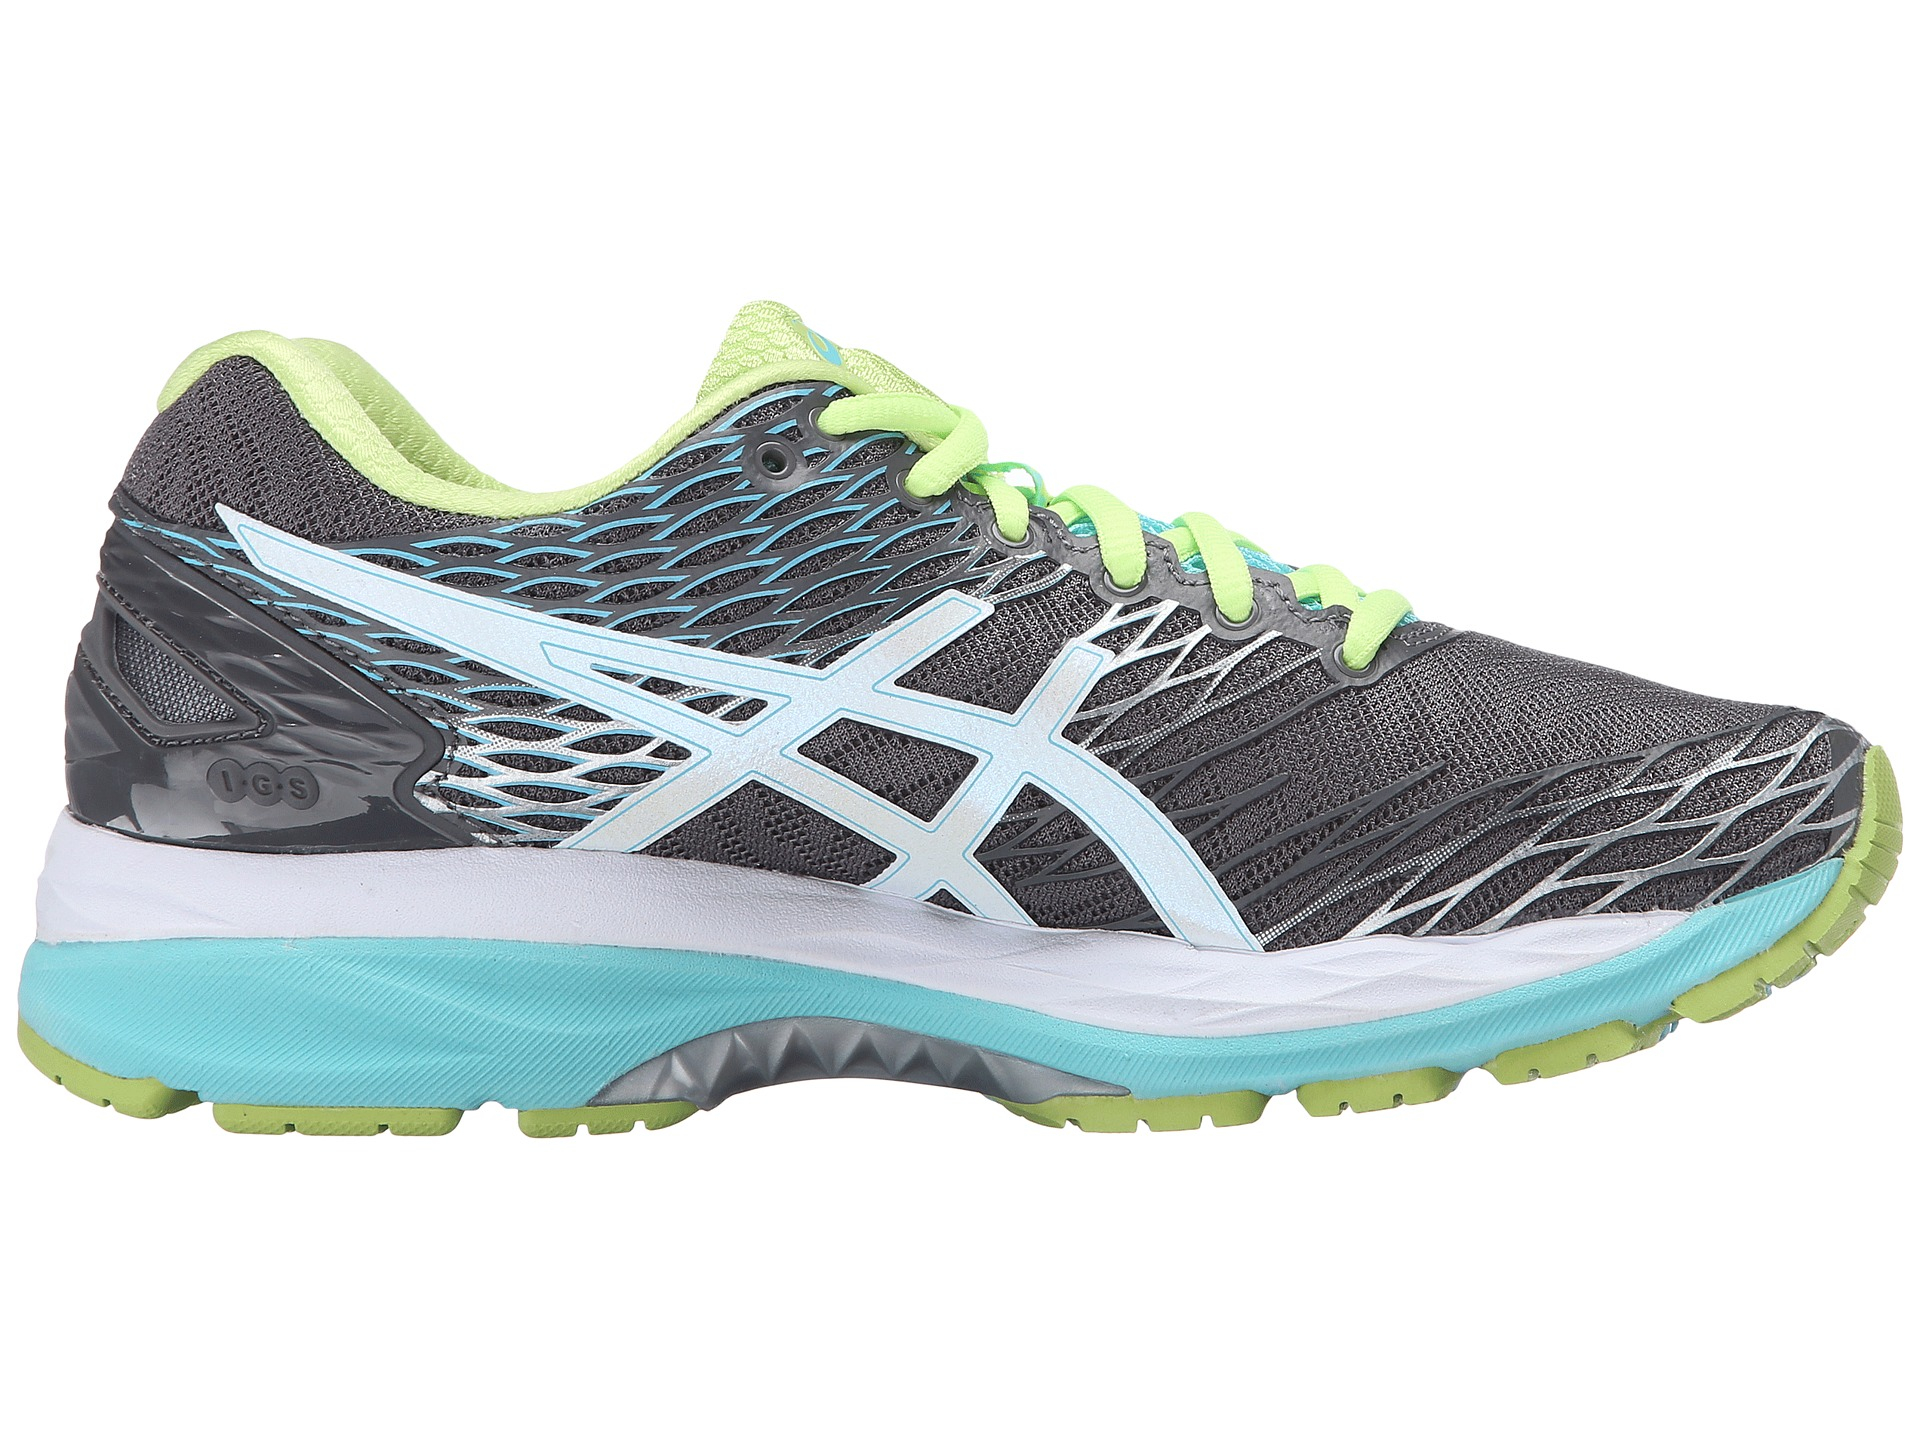 asics gel nimbus 18 in green titanium white turquoise lyst. Black Bedroom Furniture Sets. Home Design Ideas